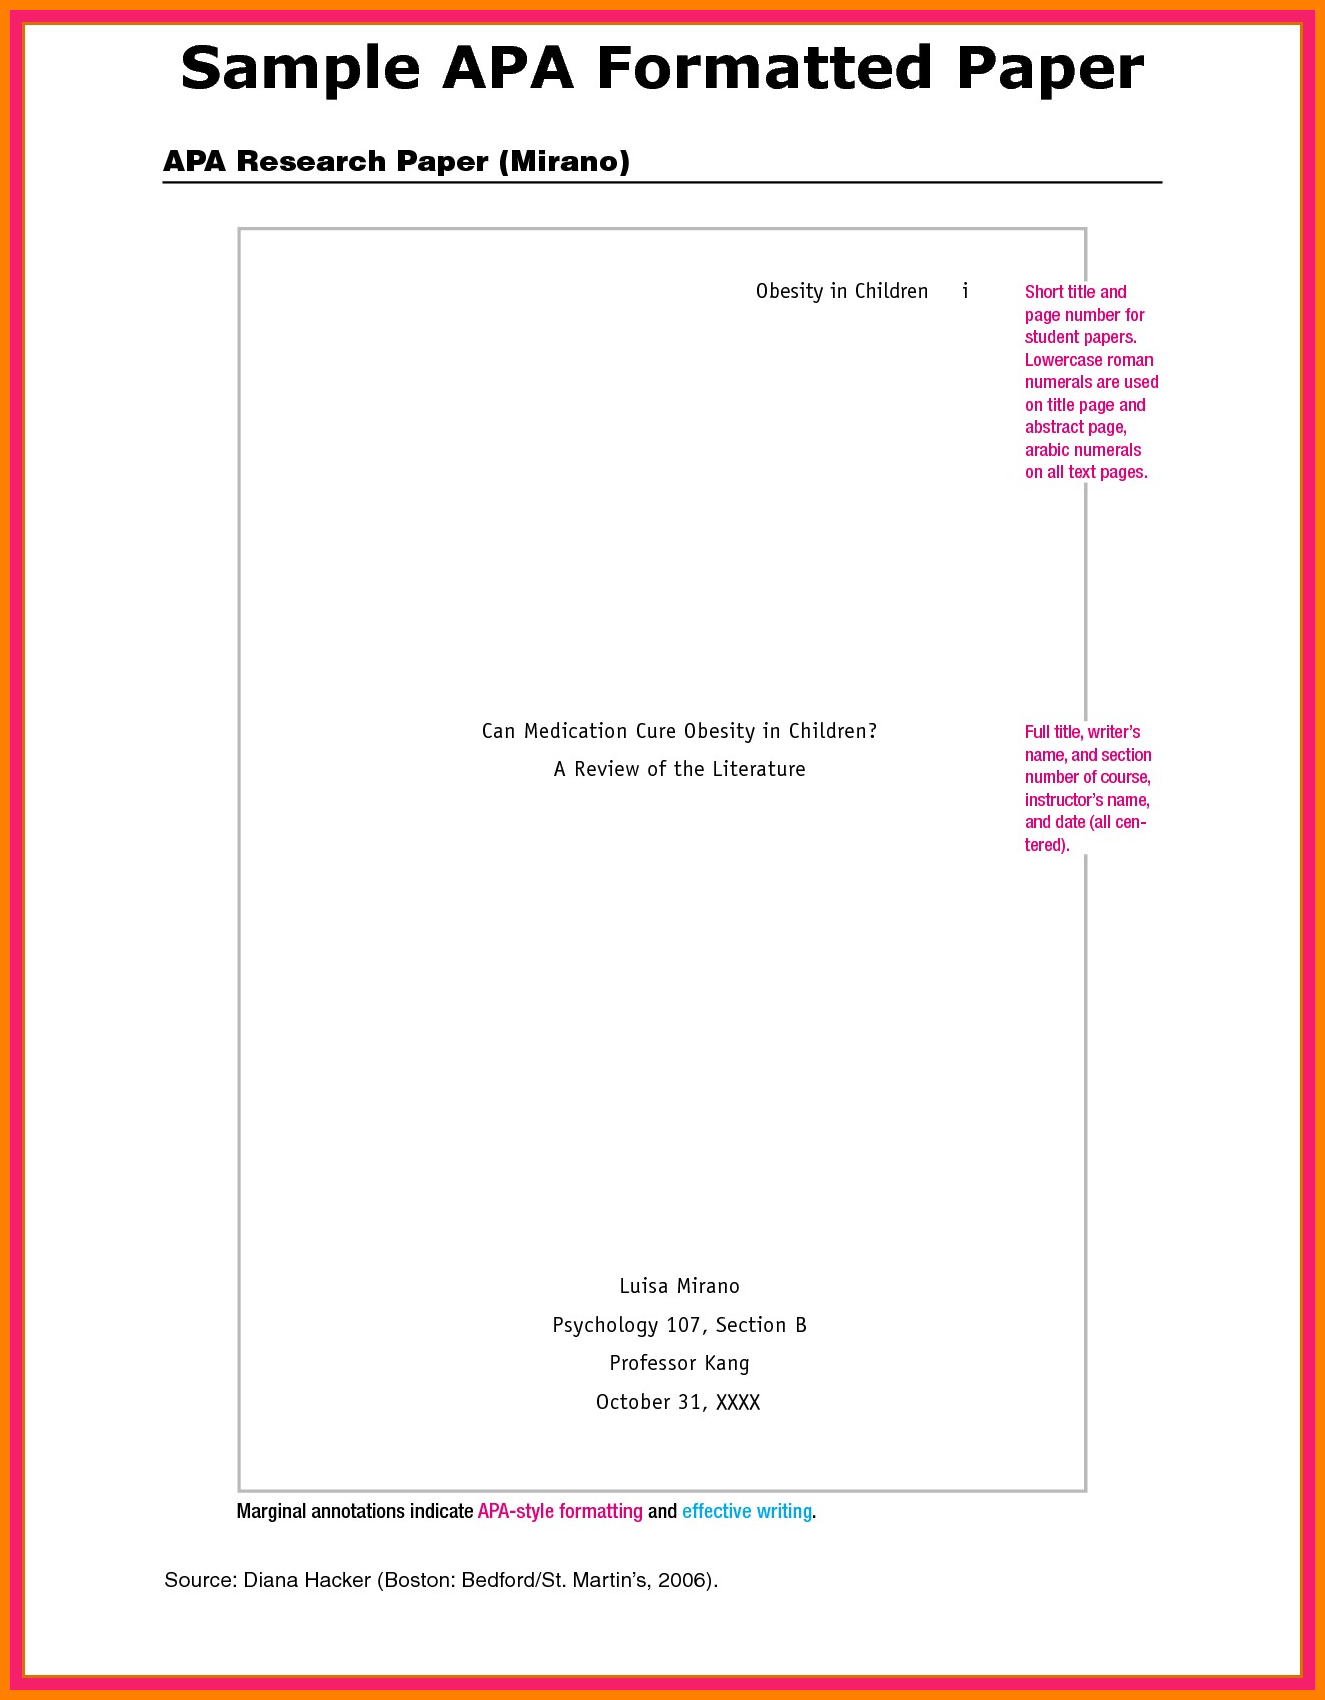 009 Apa Paper Format Appendix Example Research Of Appendices In Stupendous Sample Meaning Full